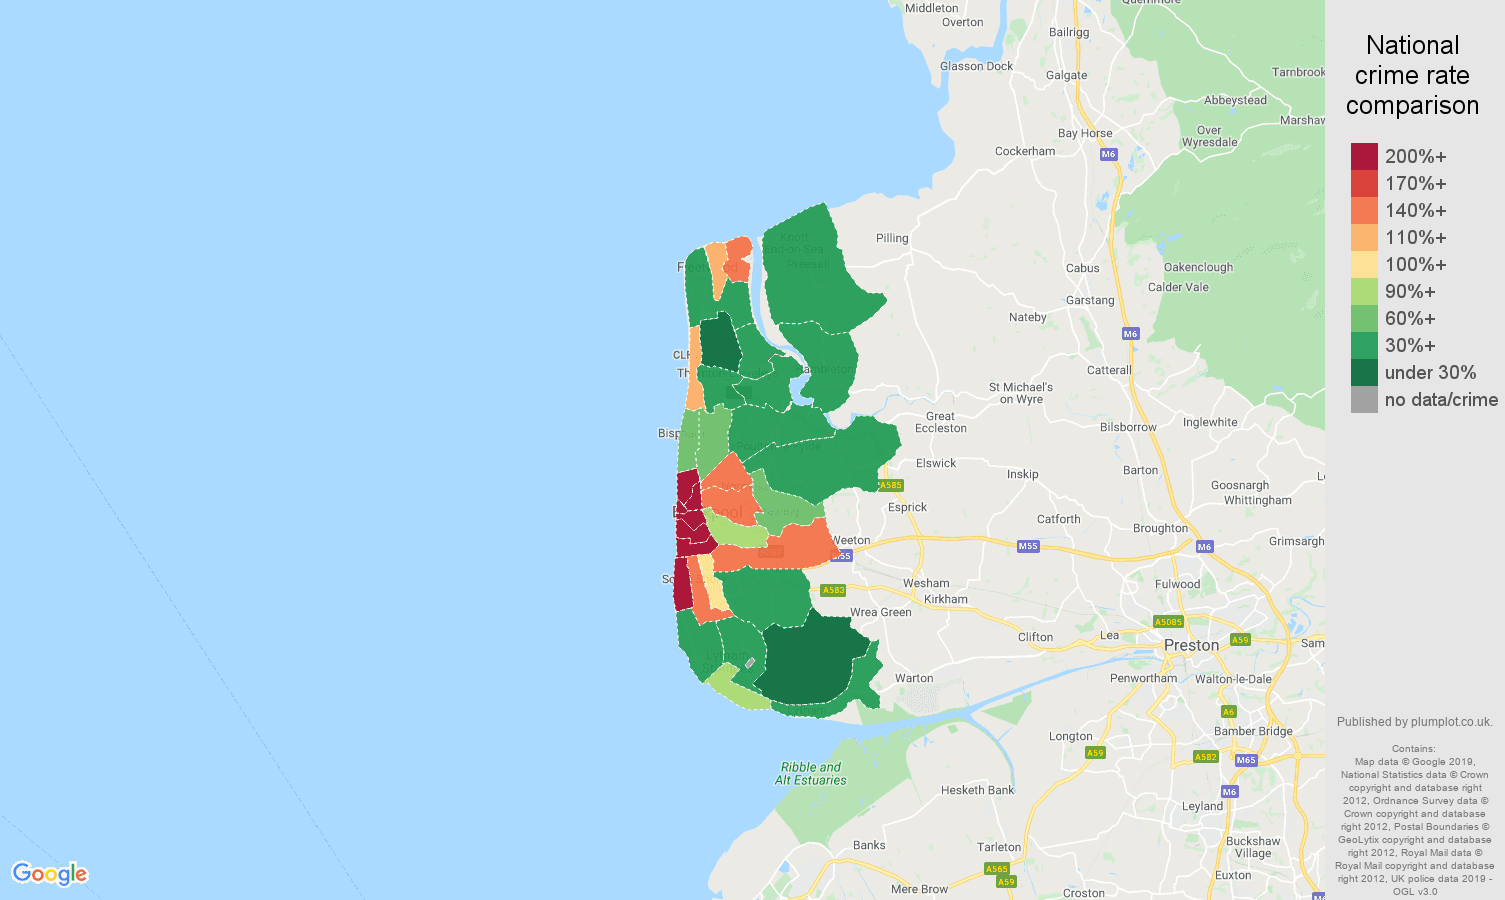 Blackpool public order crime rate comparison map